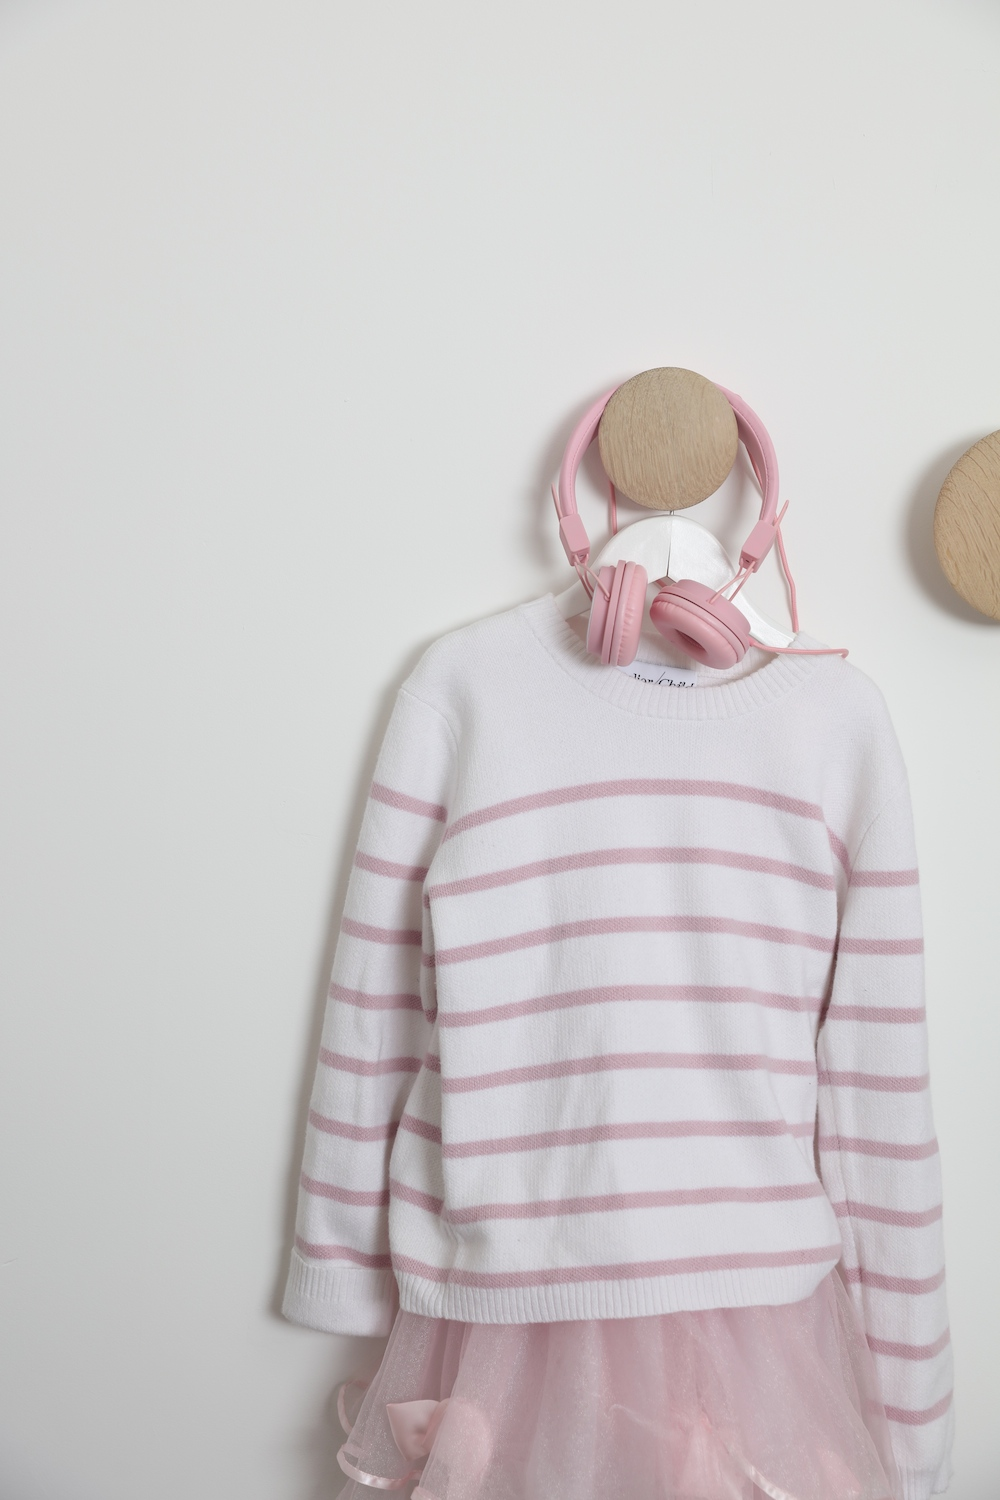 Atelier_child_pink_jumper